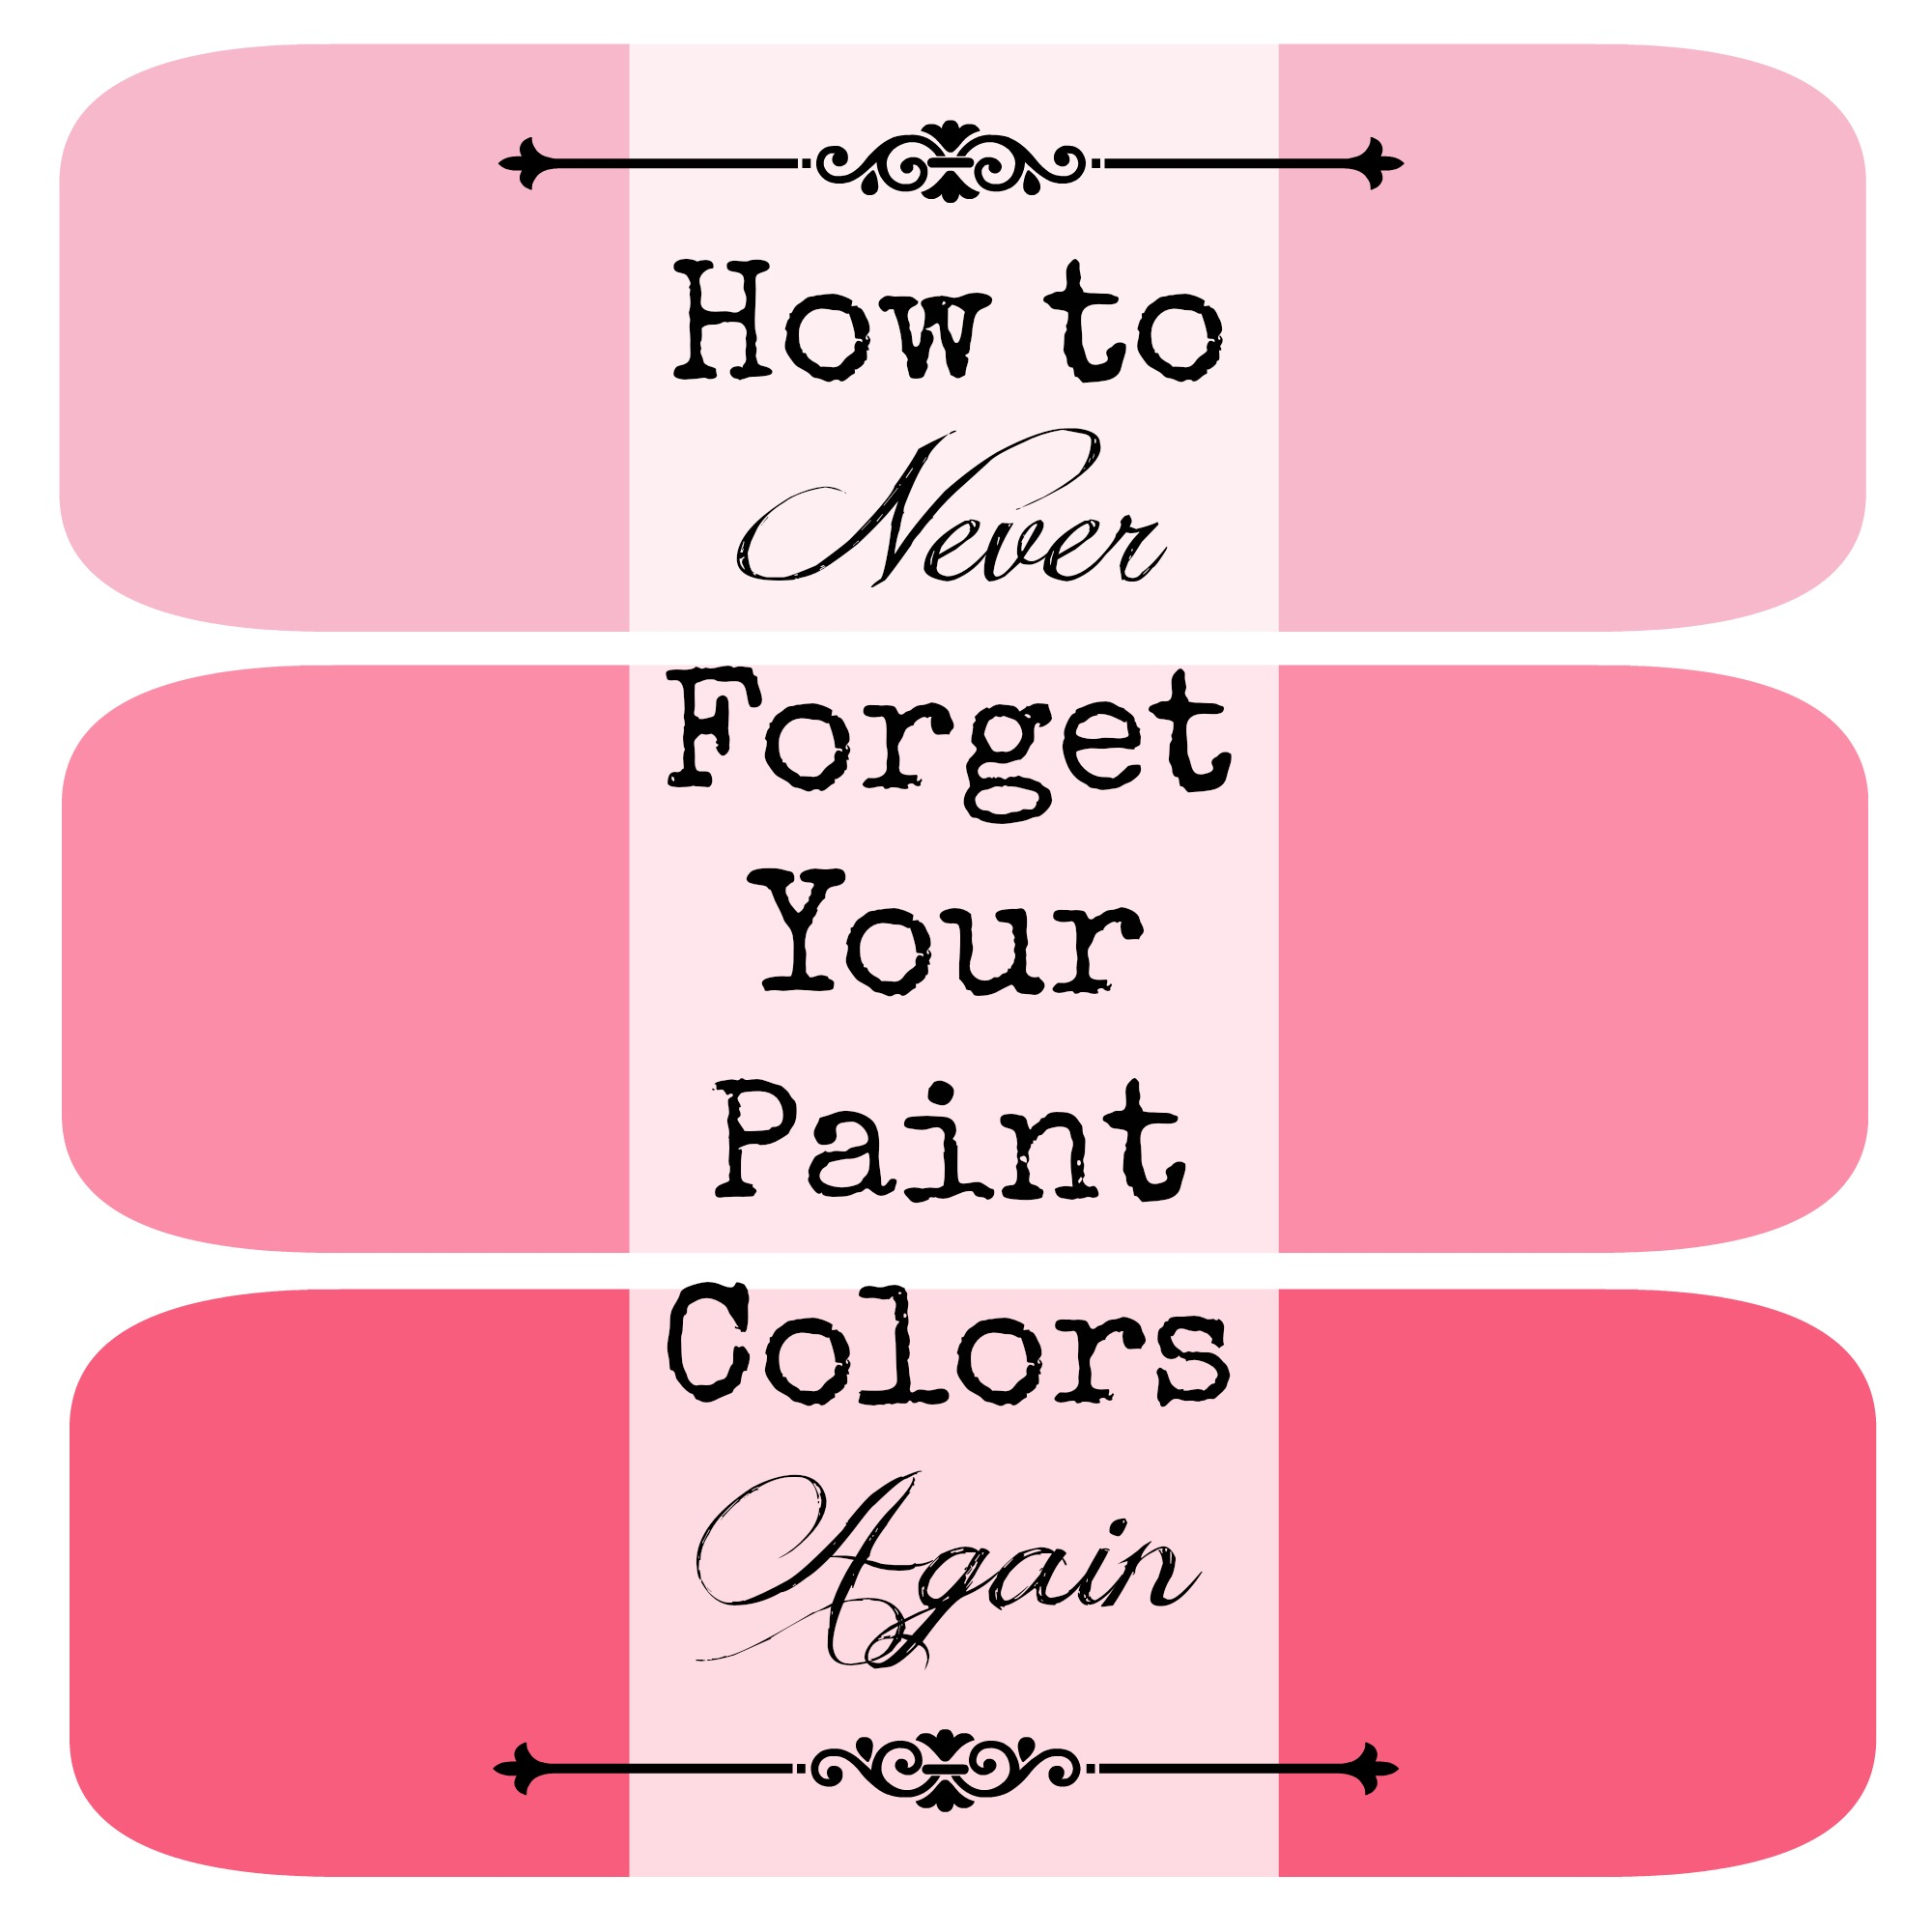 A totally simple, yet totally genius way to make sure you never forget what color you painted a room again.